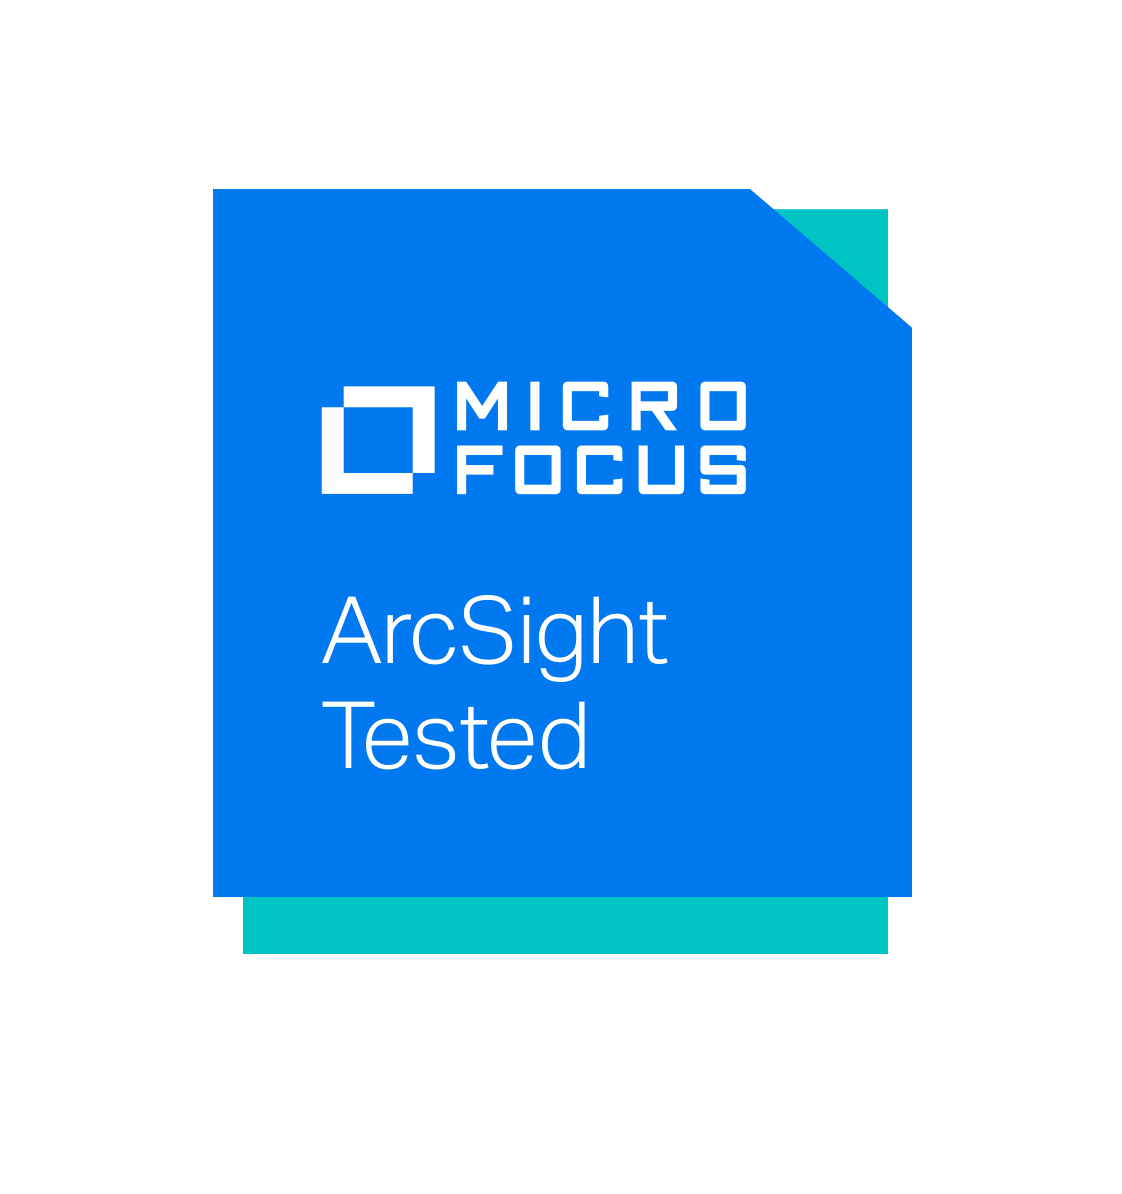 Micro Focus ArcSight Tested